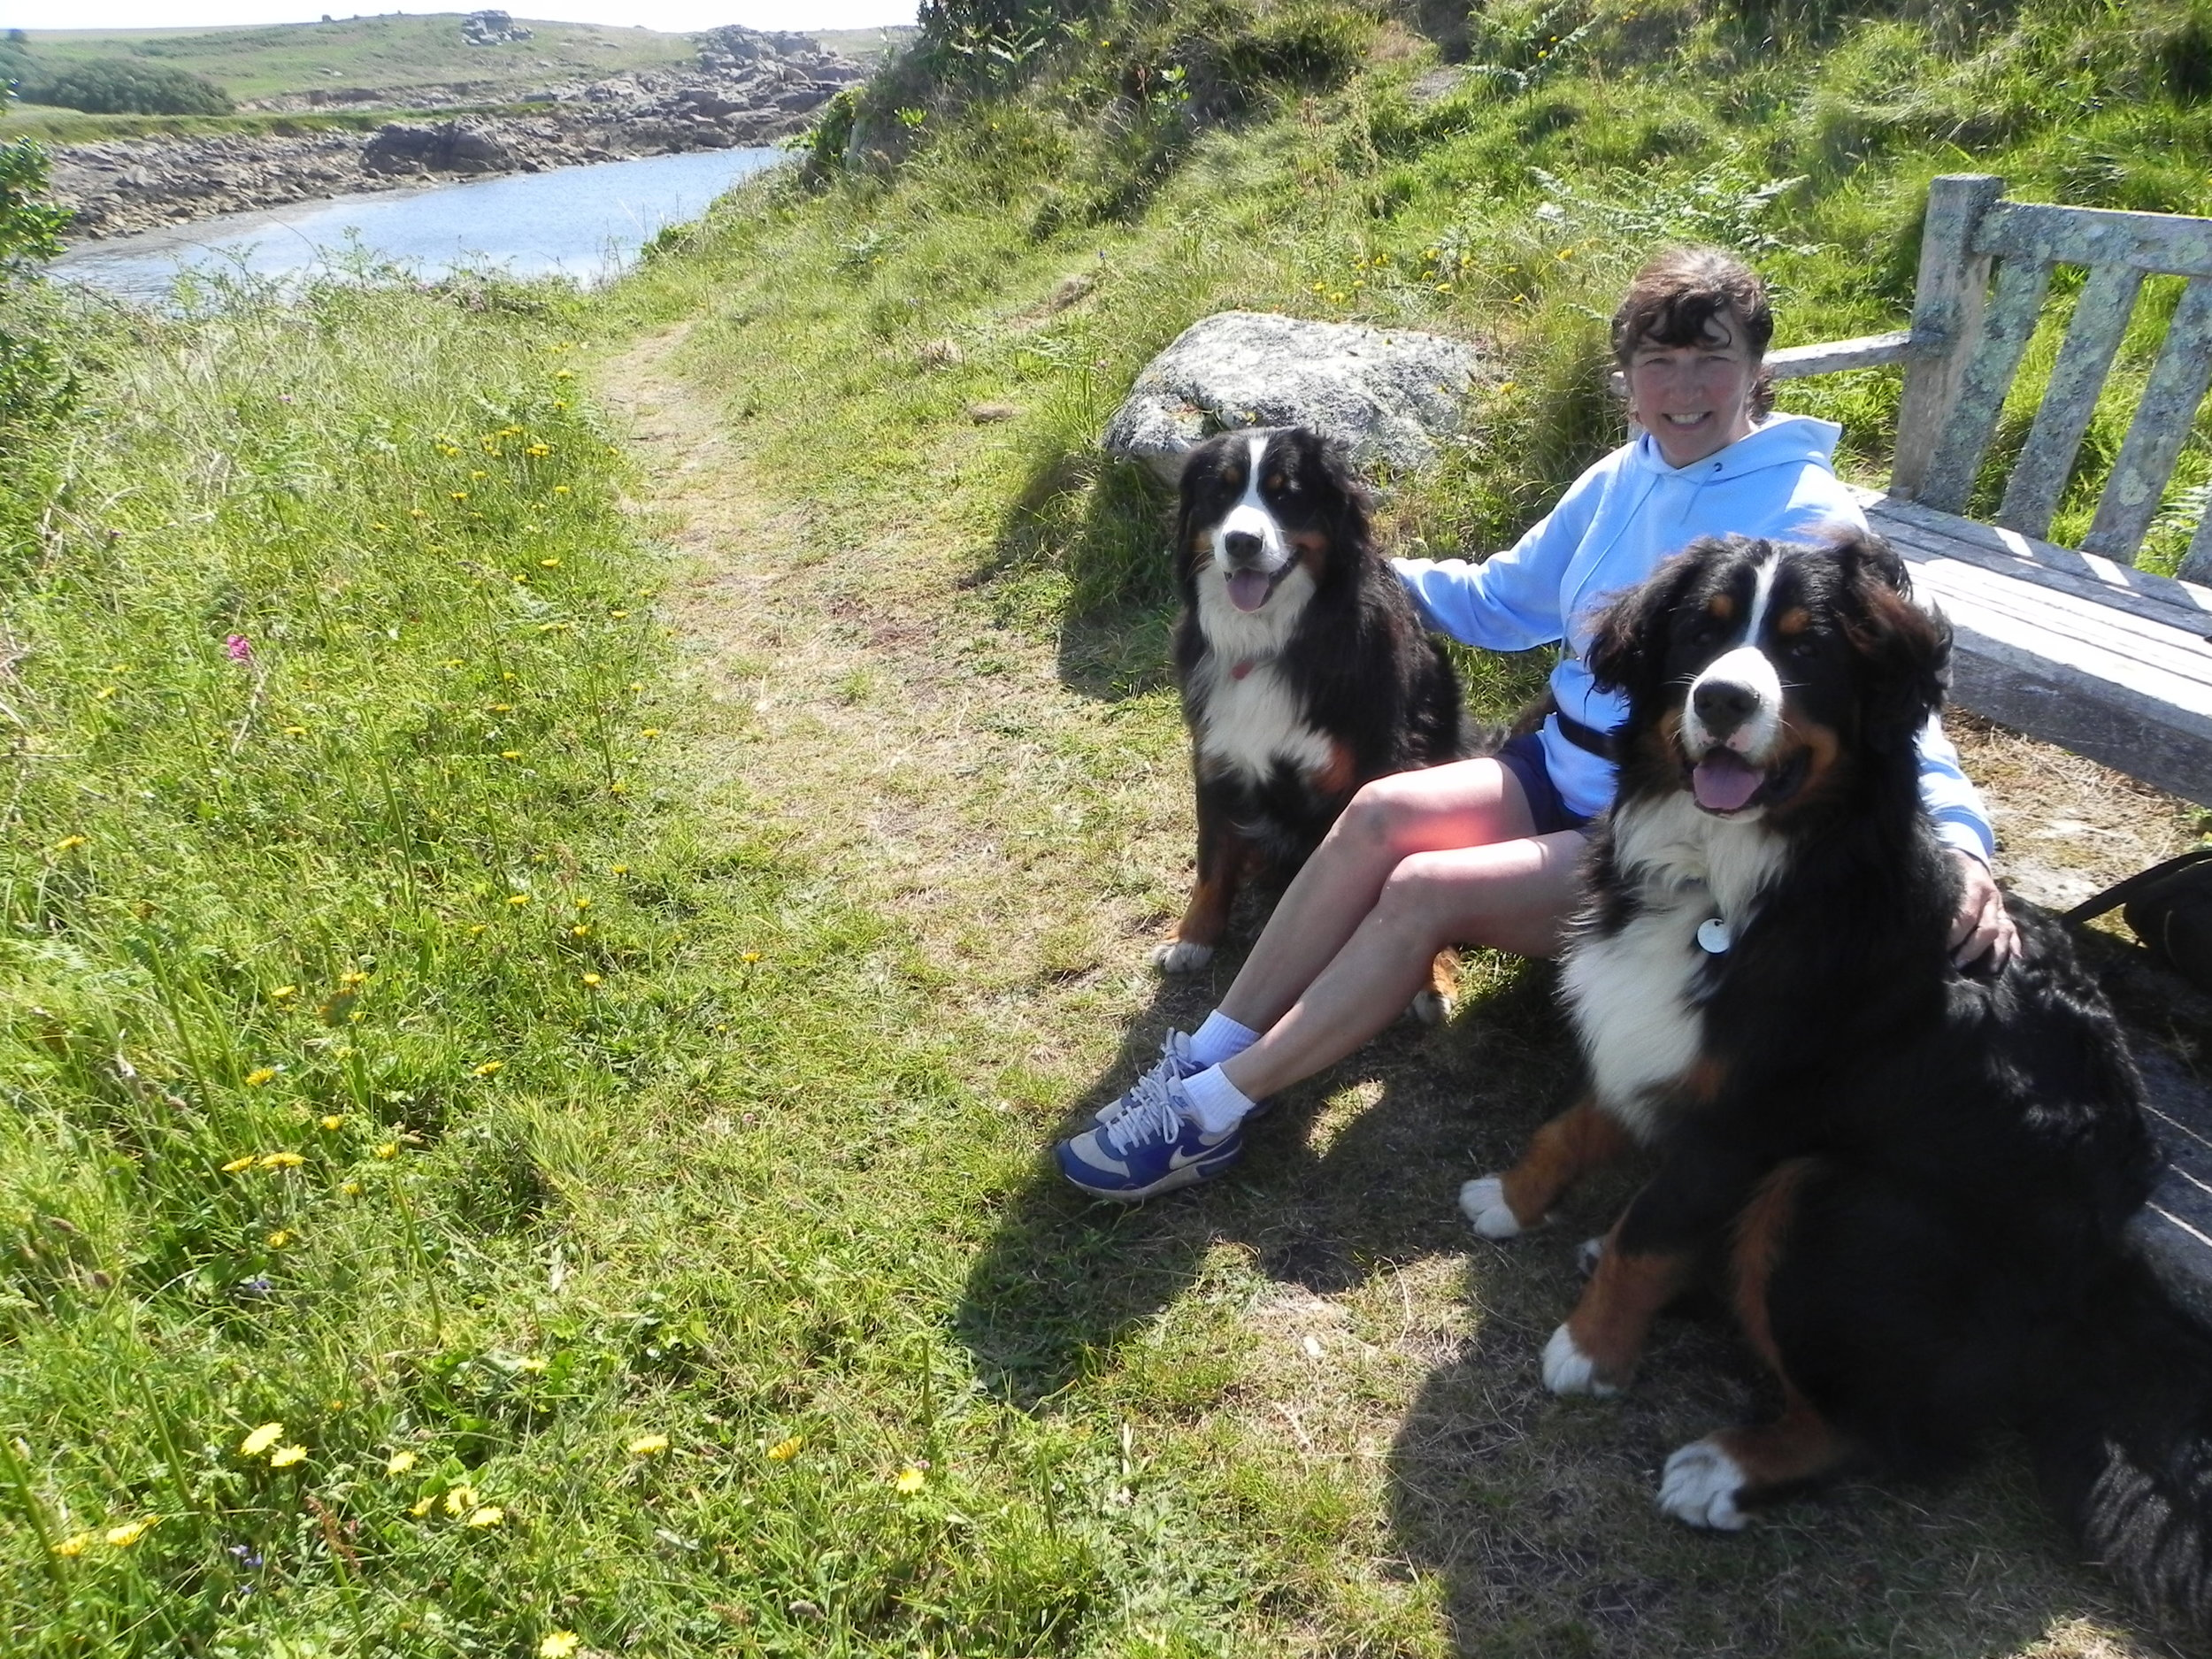 """""""Dear all  Ian and I have been visiting the Isles of Scilly for over 30 years; initially on our own, adding Mum and Dad and our three daughters on the way, plus our beautiful Bernese Mountain Dogs. Kensa sadly is no longer with us but I am pictured with Emrys (4) and Meryn (9 months). Although we live in Cornwall, the Isles of Scilly are so special; you feel you have arrived """"home"""". I heard about my winnings the day before our holiday towards the end of May this year and have already re-booked for next year. Many thanks. Diane """""""